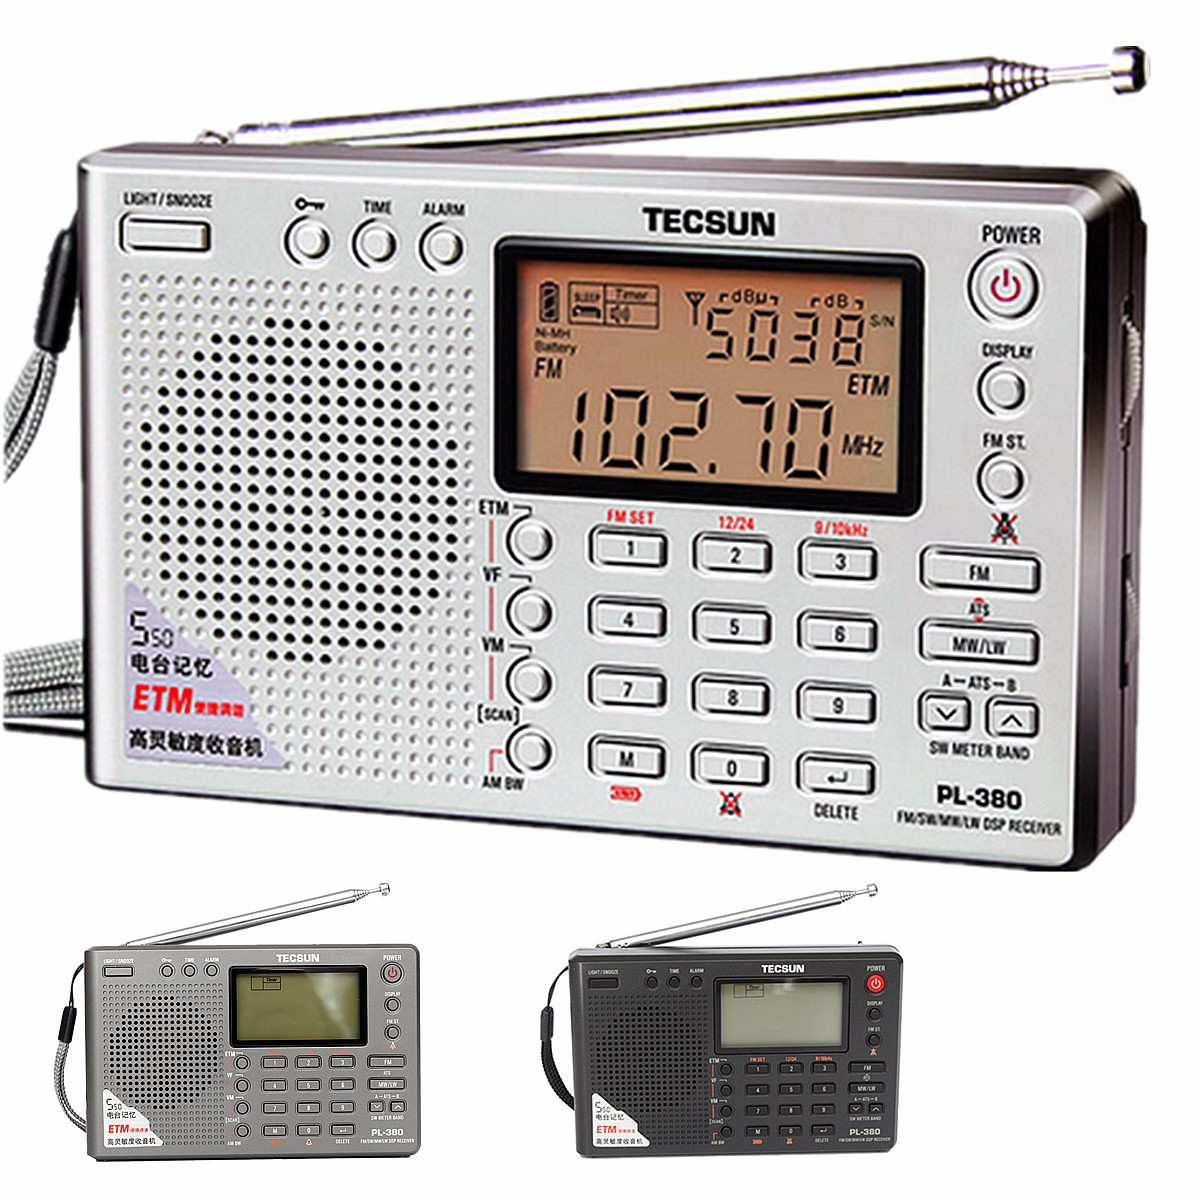 TECSUN PL-380 DSP PLL FM MW SW LW Digital Stereo Radio World-Band Receiver New 7 Tuning Mode Selectable Silver Gray Black tecsun pl 310 fm am sw lw dsp world band radio pl310